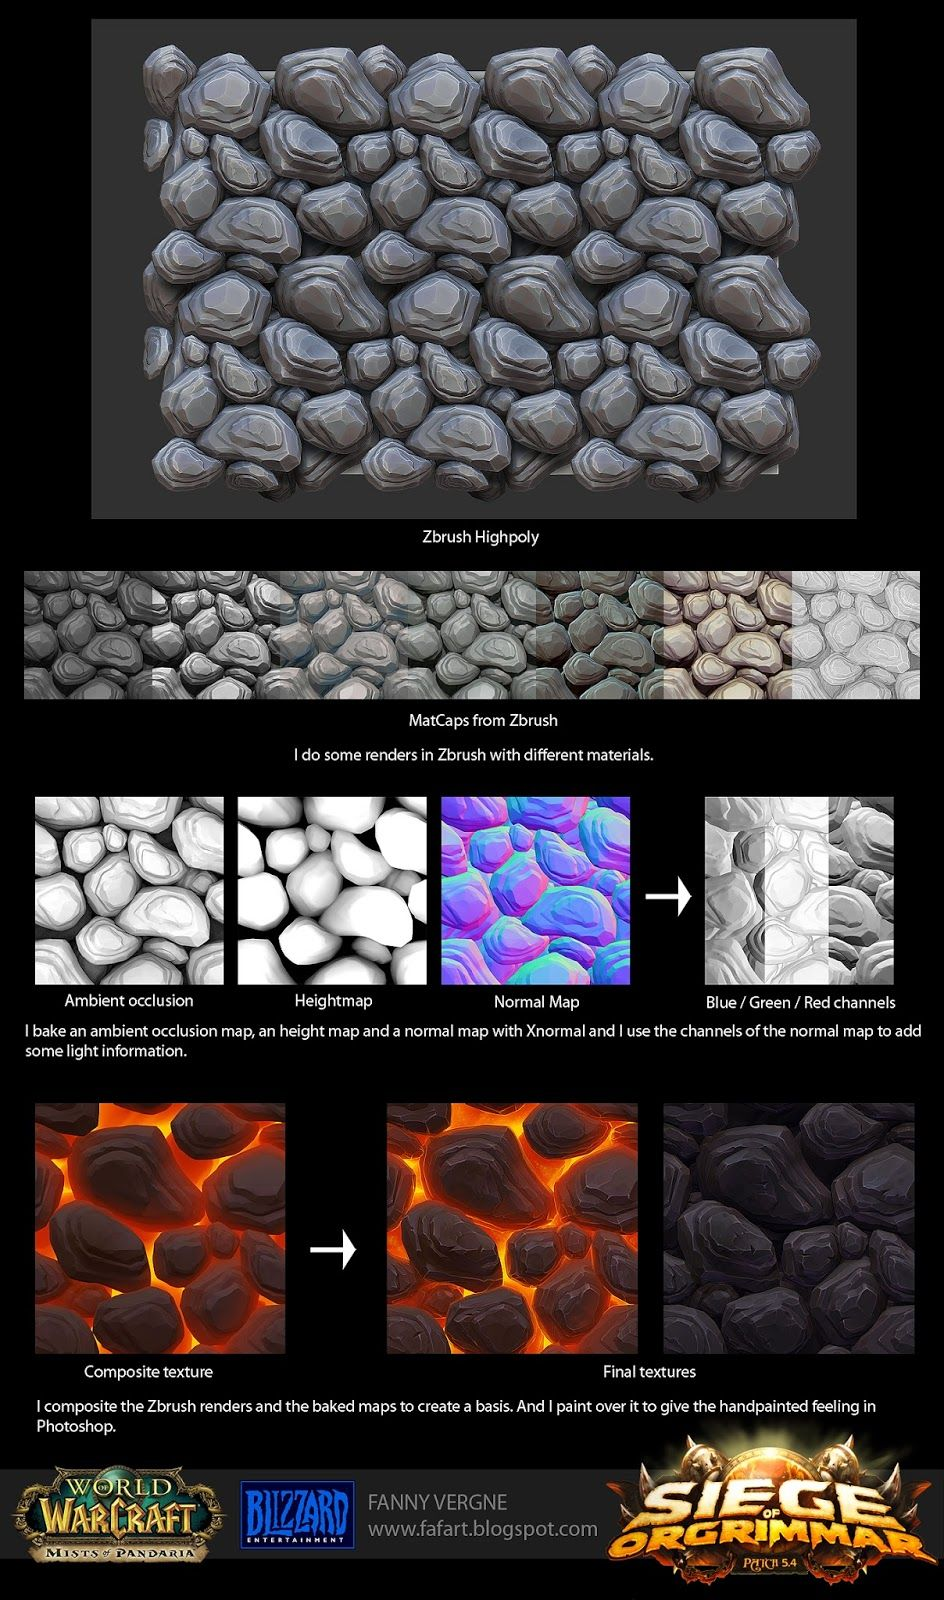 Zbrushphotoshop creating texture using zbrush modeling tutorials zbrushphotoshop creating texture using zbrush modeling tutorials pinterest zbrush photoshop and 3d baditri Images